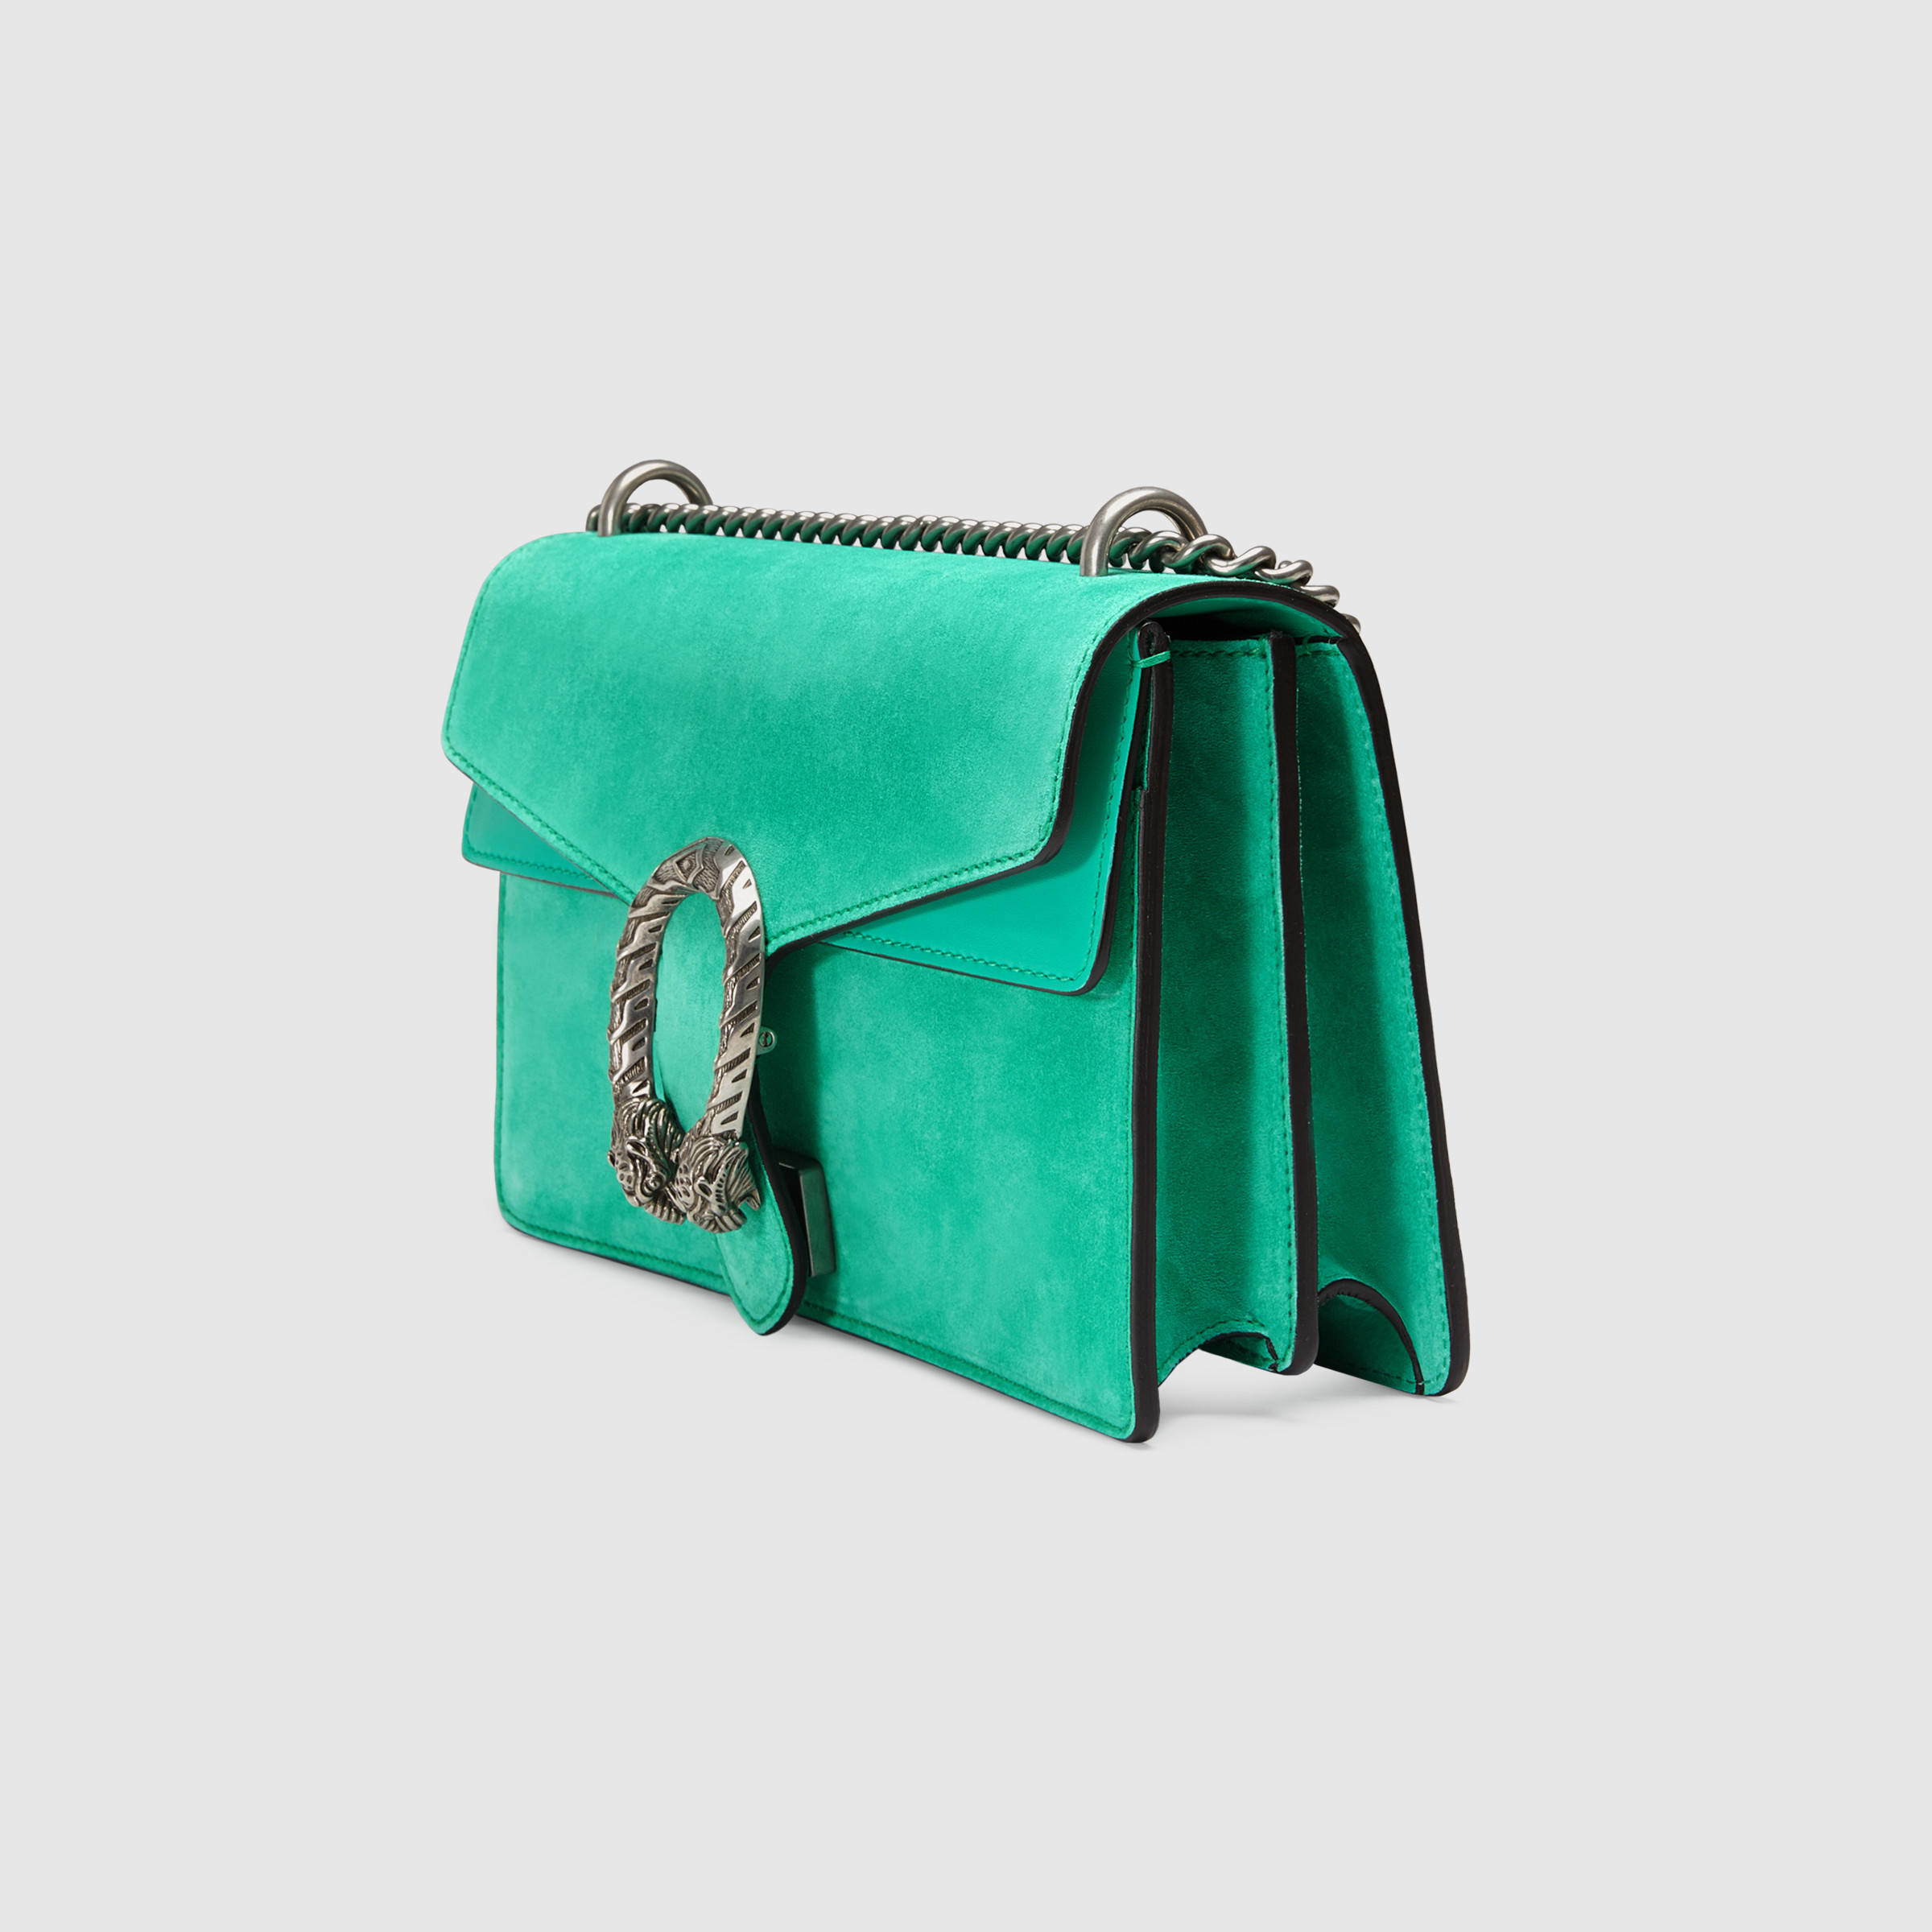 c018867c6809b3 Dionysus Gucci Bag Green | Stanford Center for Opportunity Policy in ...